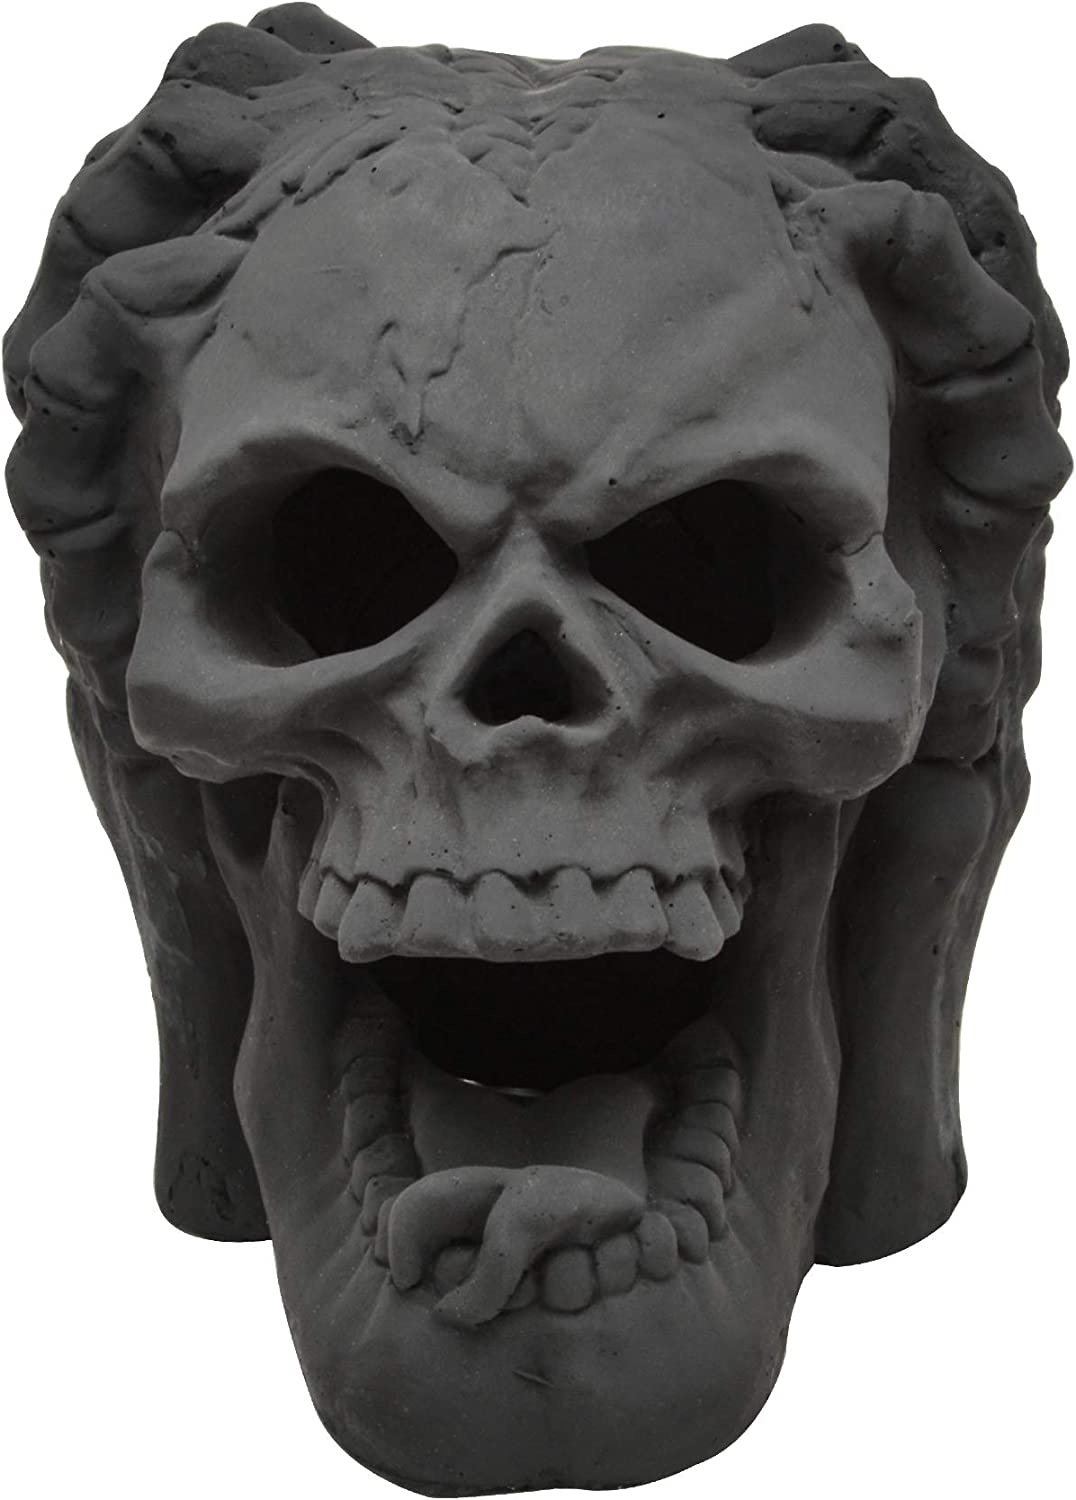 Stanbroil Fireproof Imitated Human Skull with Two Hands Gas Log for Indoor or Outdoor Fireplaces, Fire Pits, Halloween Decor, 1-Pack - Patent Pending